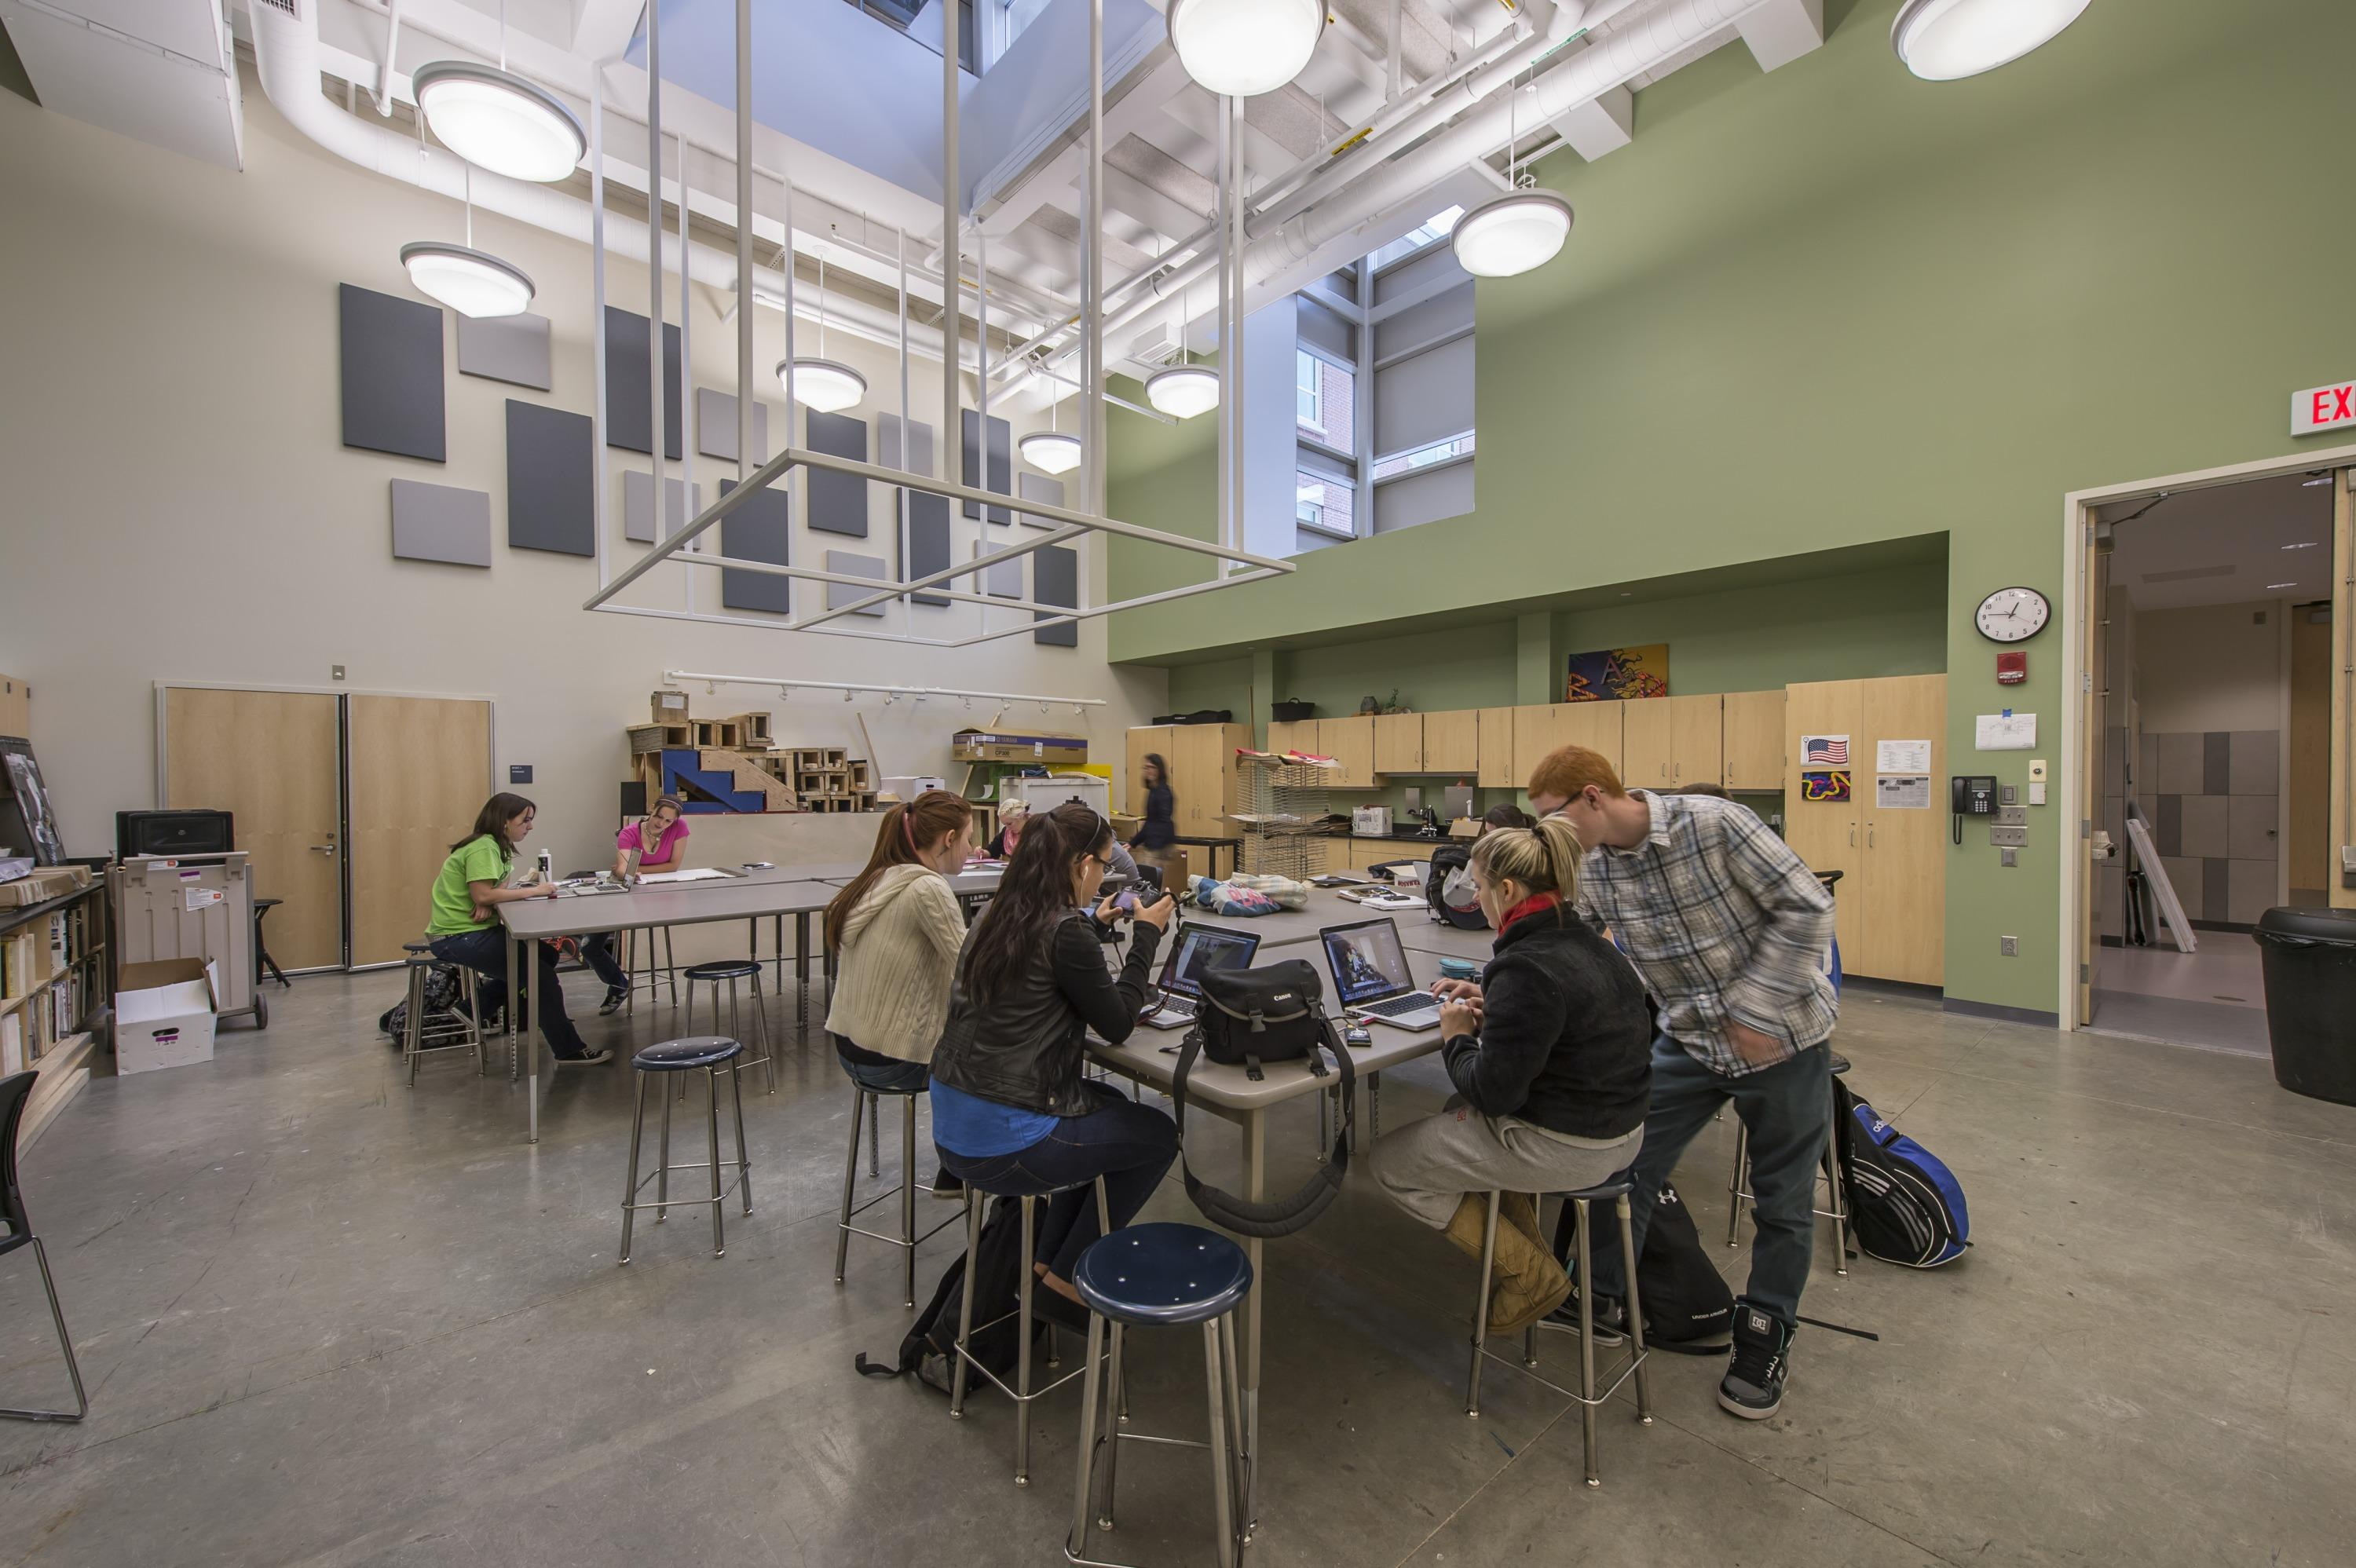 Students in new lab at Tewksbury High School